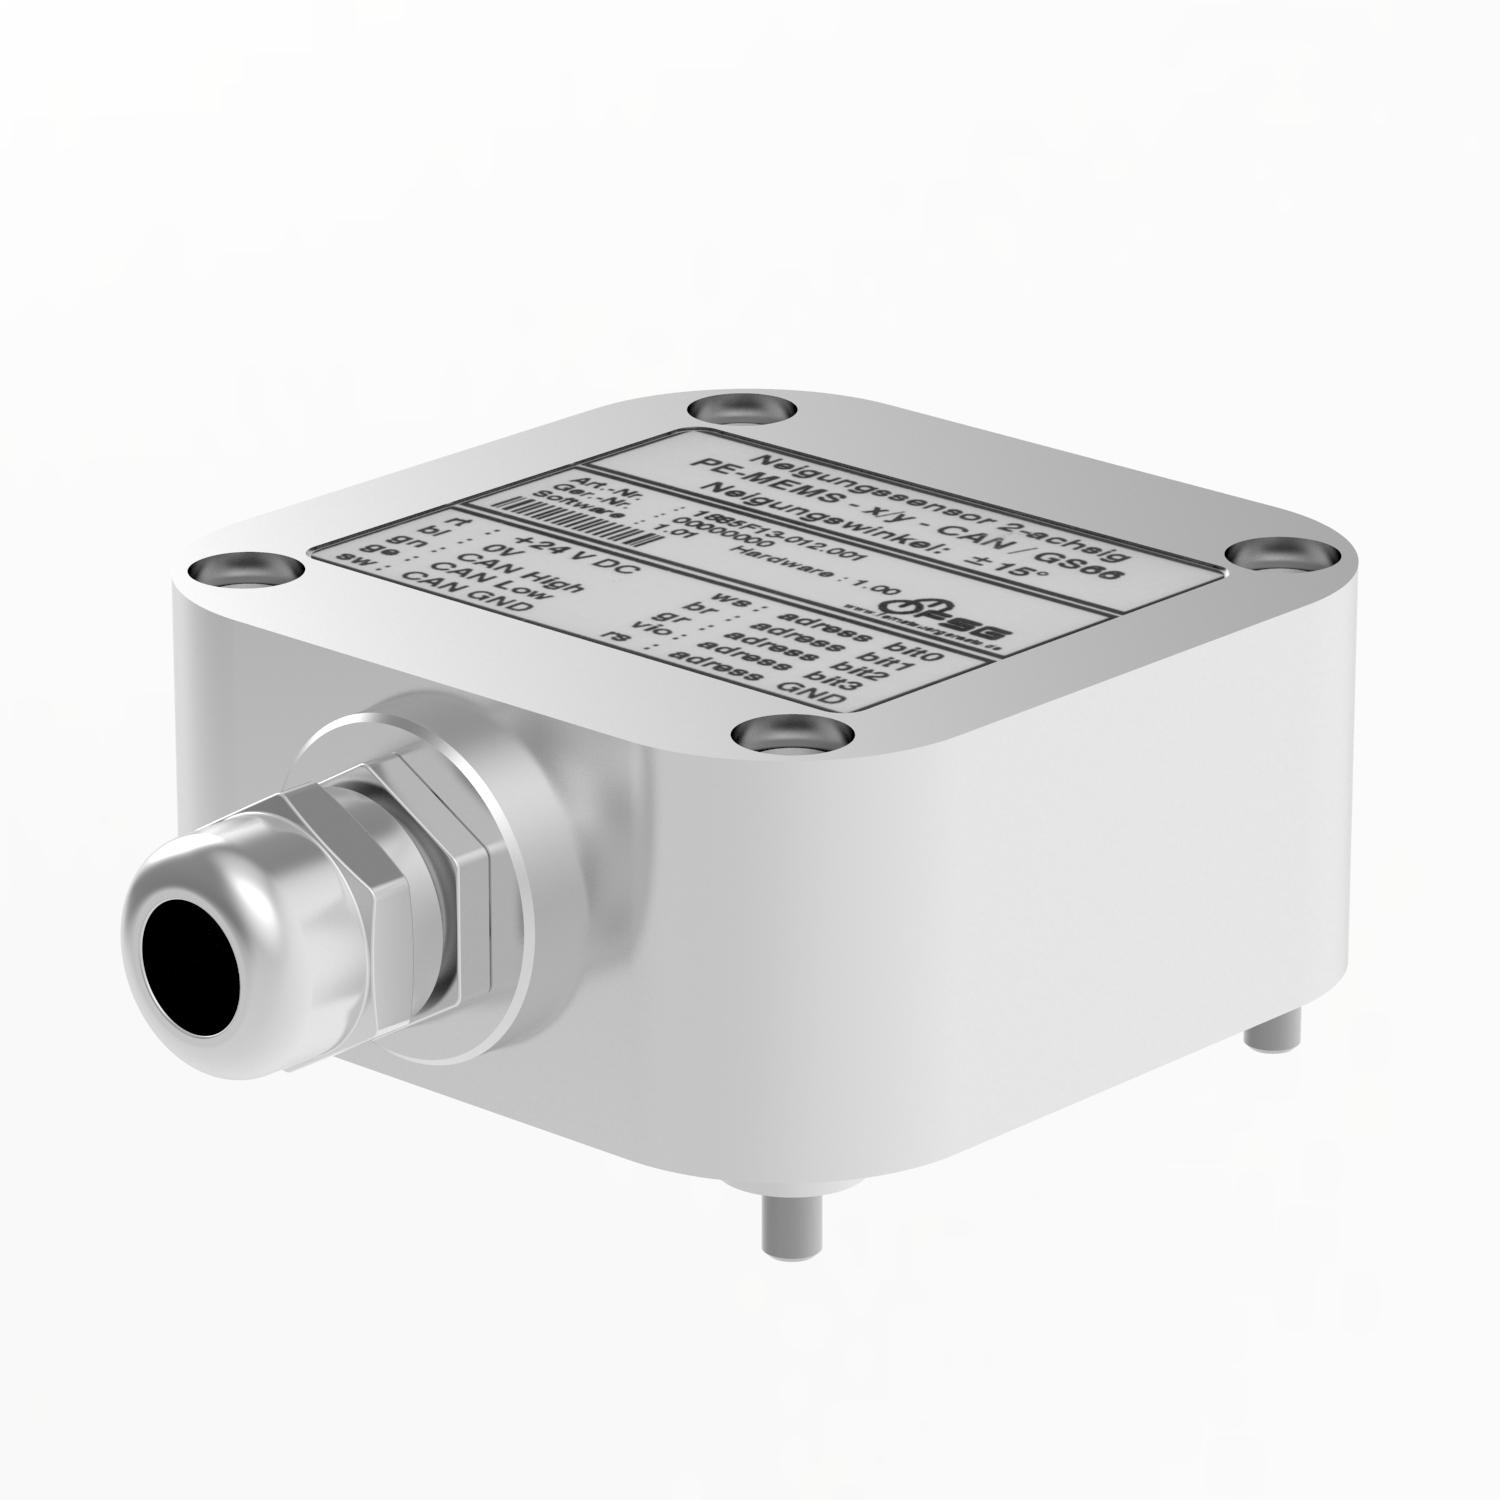 PE-MEMS.../GS66 series inclinometers are suitable for measuring platform slope, for example in marine applications